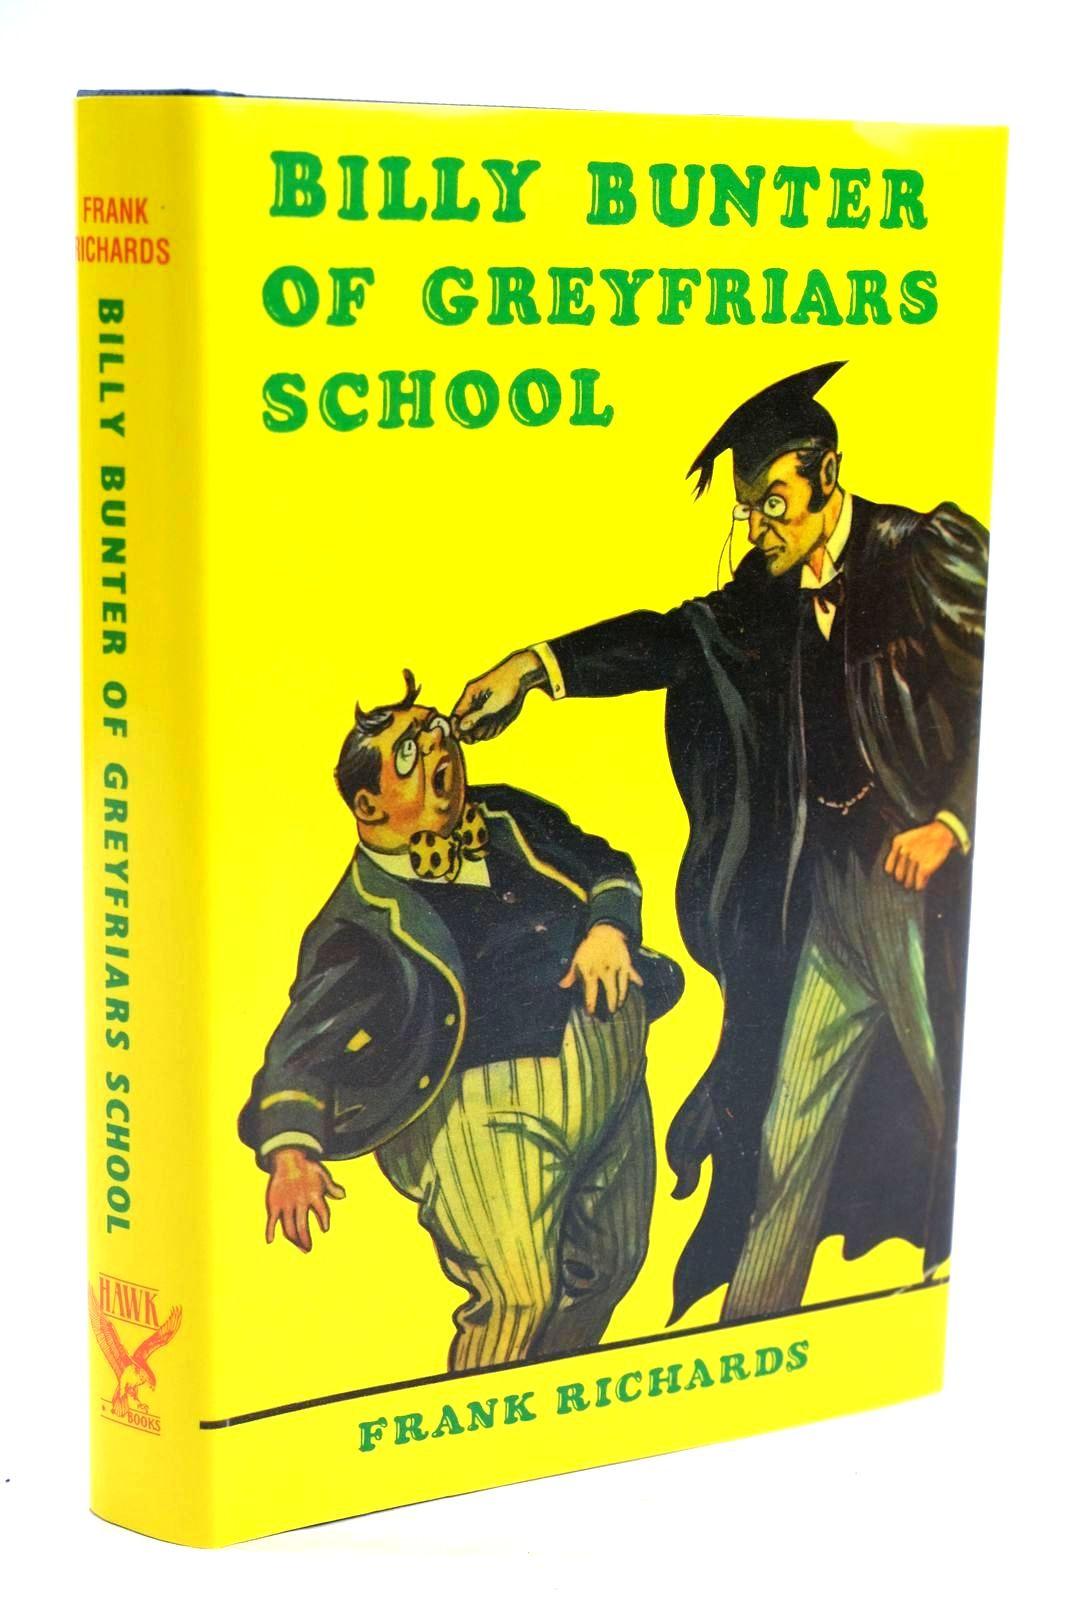 Photo of BILLY BUNTER OF GREYFRIARS SCHOOL- Stock Number: 1319700